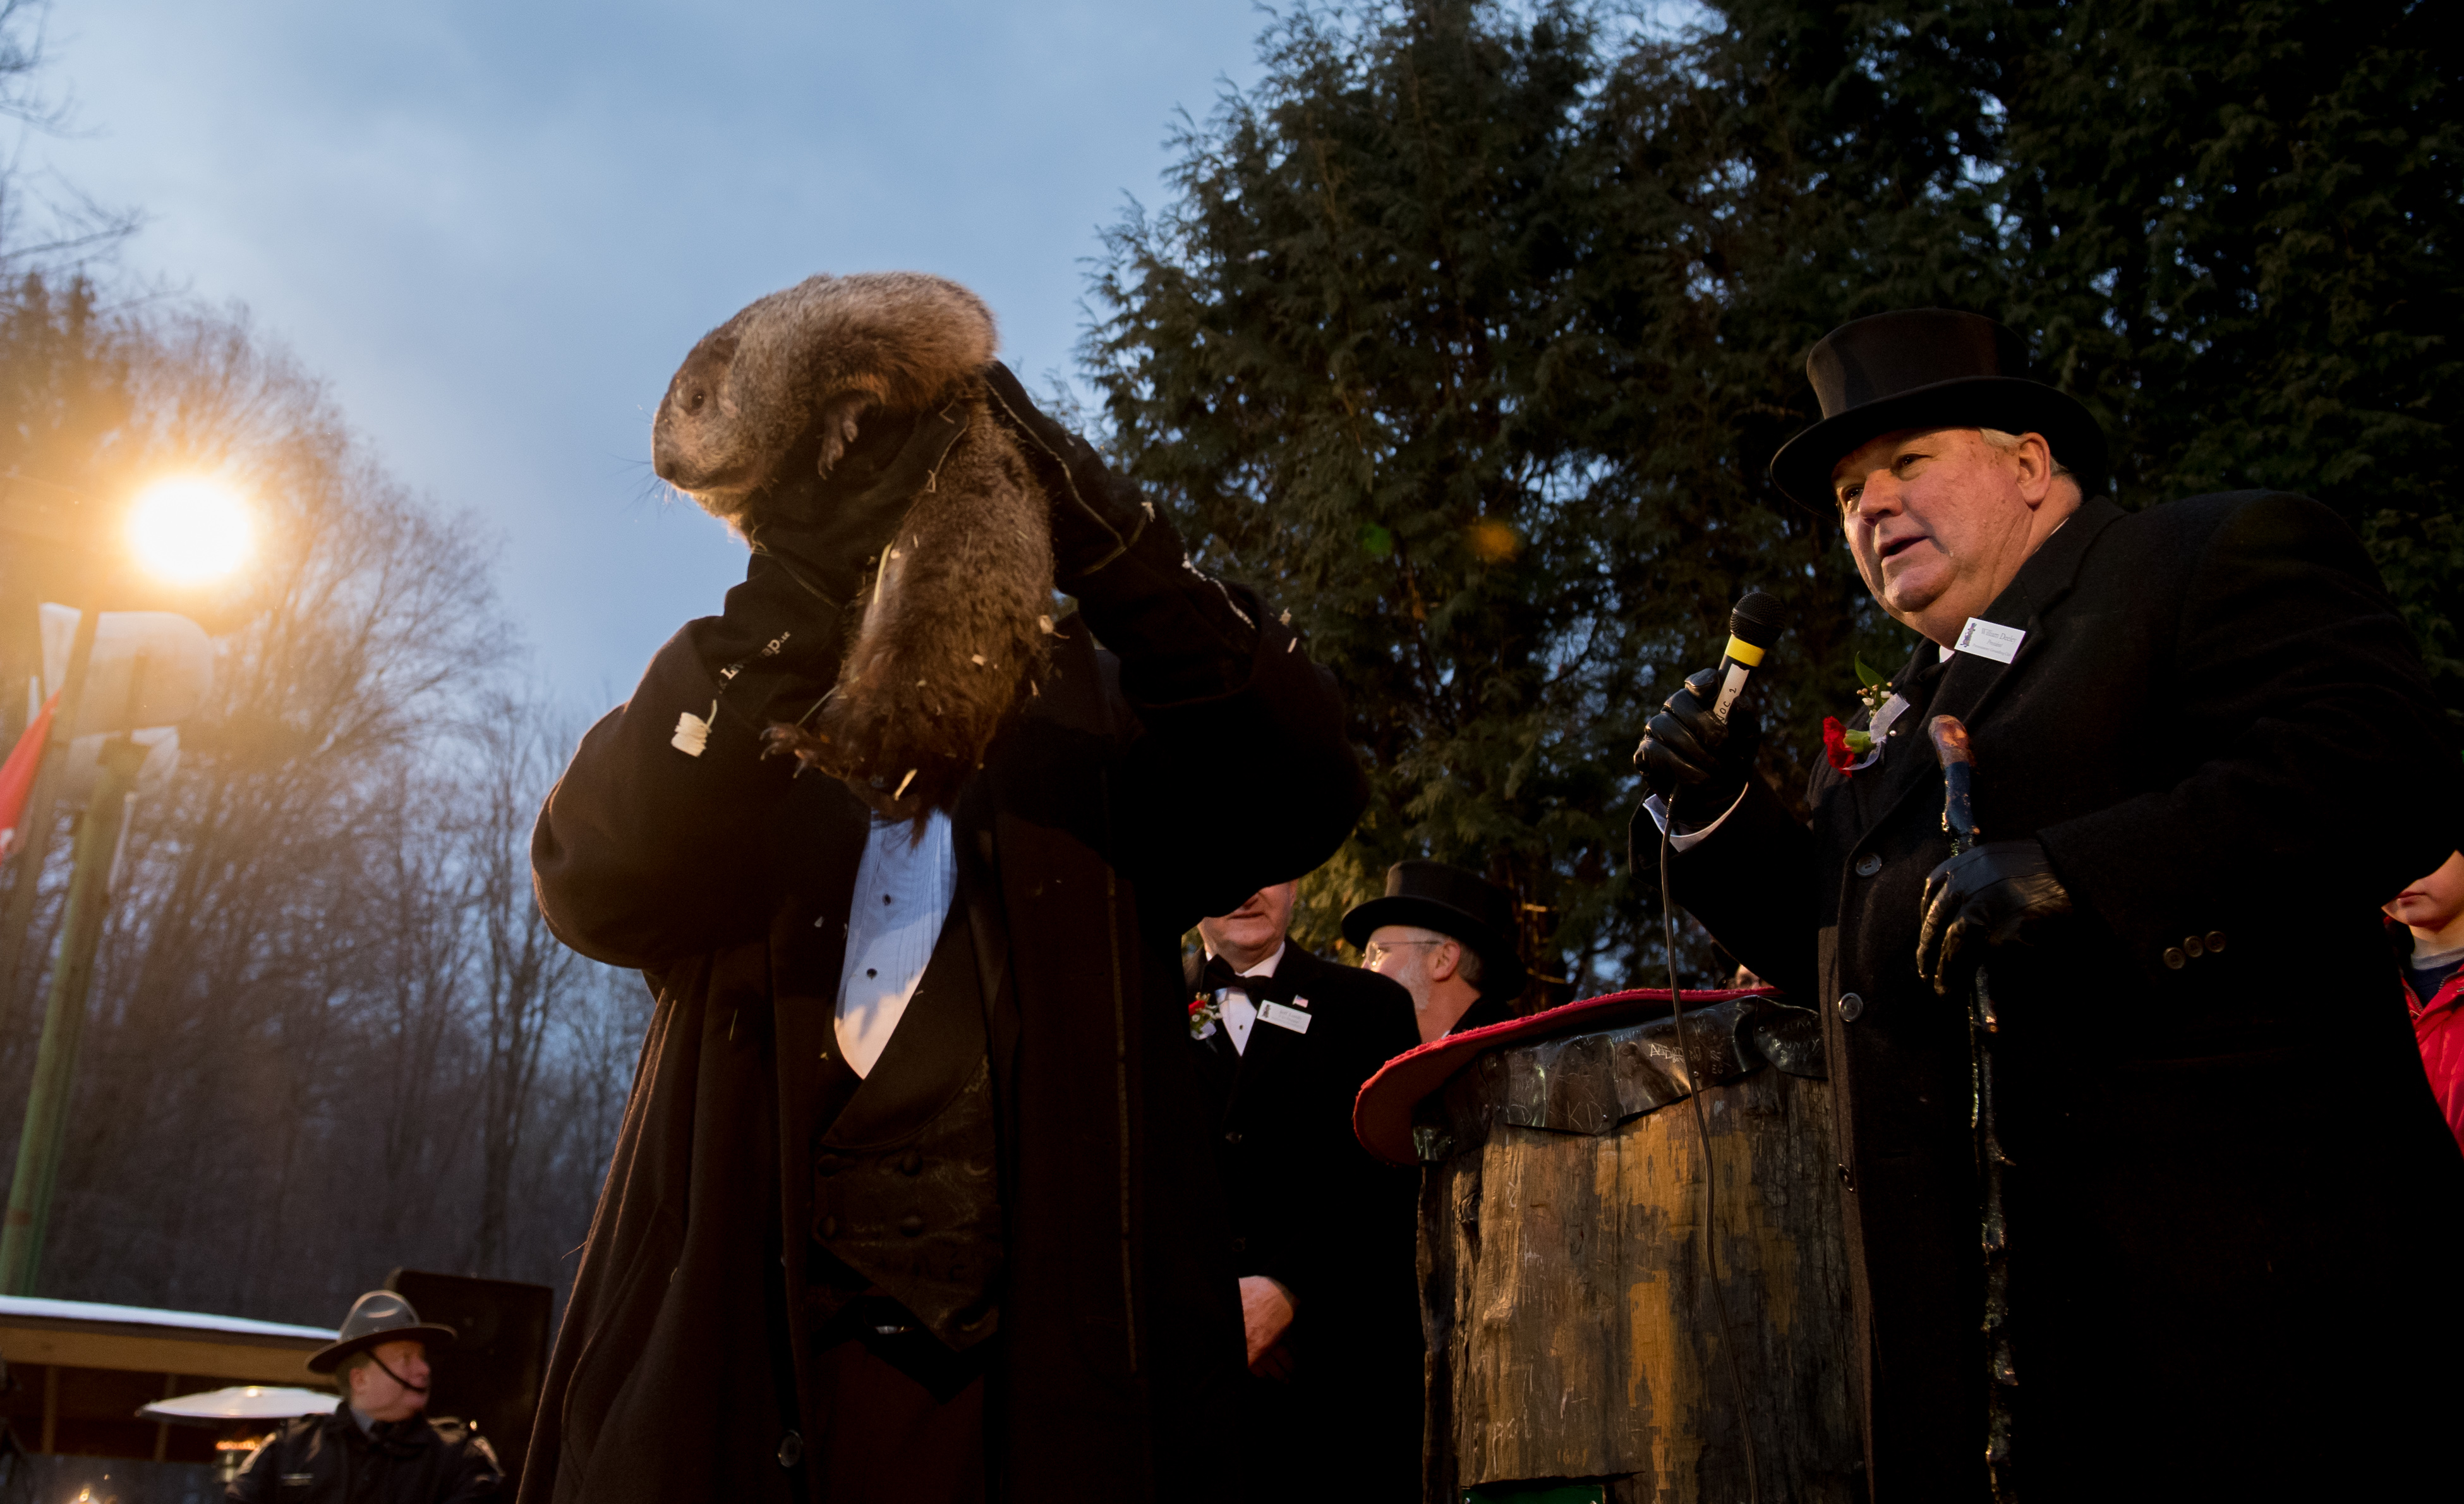 Annual Winter Tradition Of Groundhog Day Celebrated In Punxsutawney, Pennsylvania